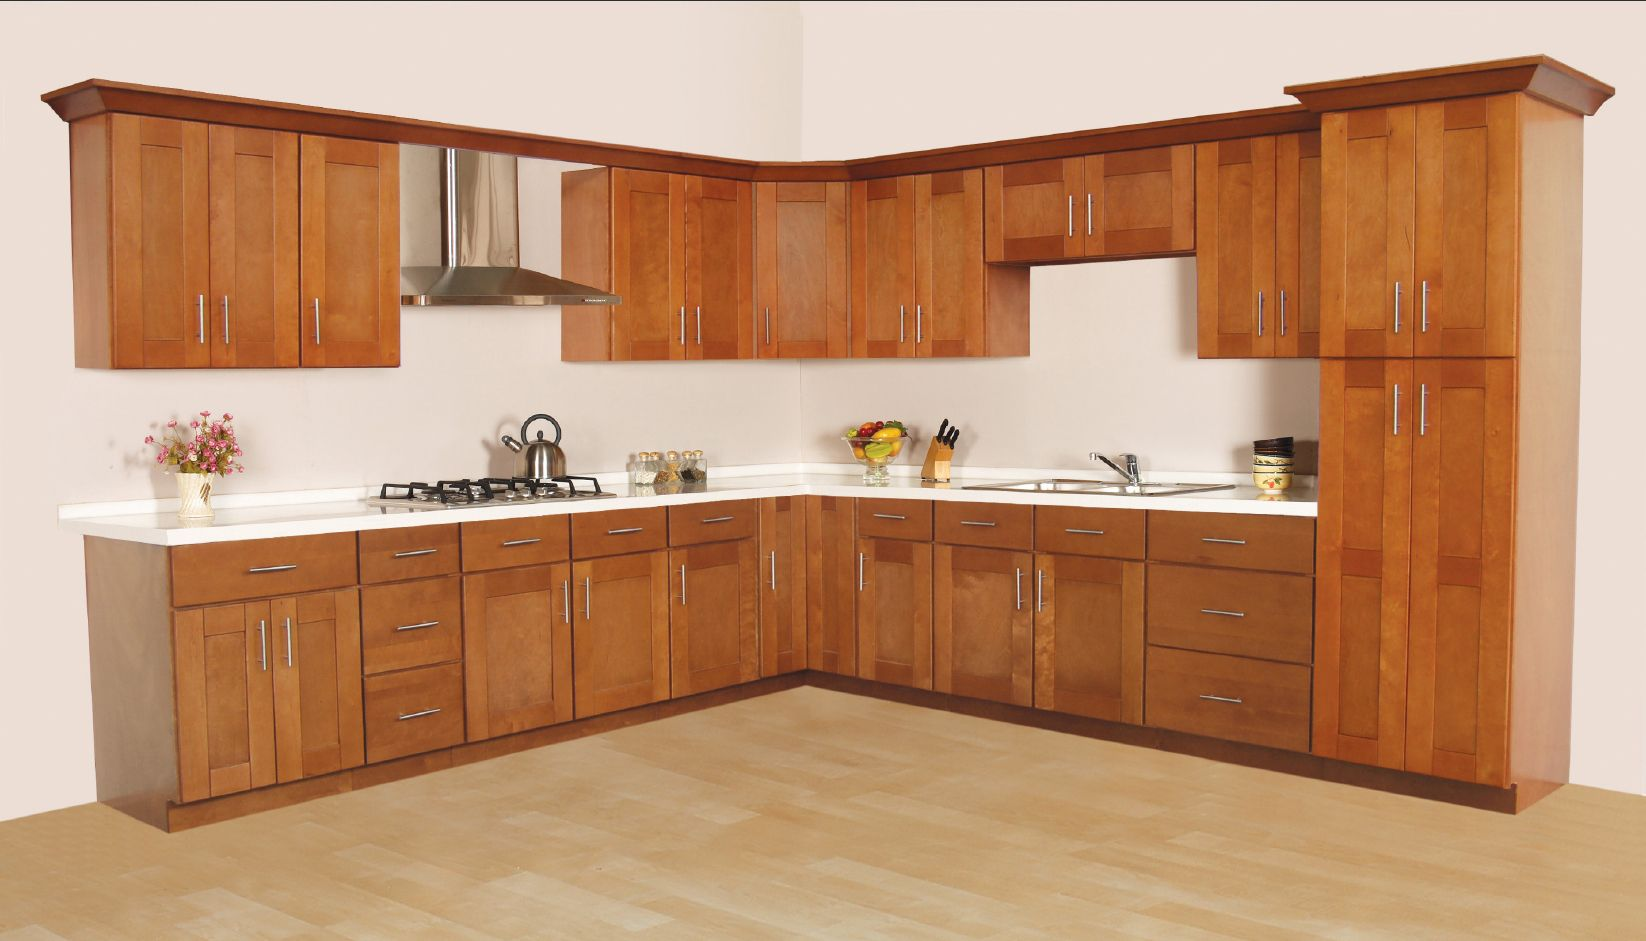 Best kitchen cabinet design ideas to reshape your space shaker